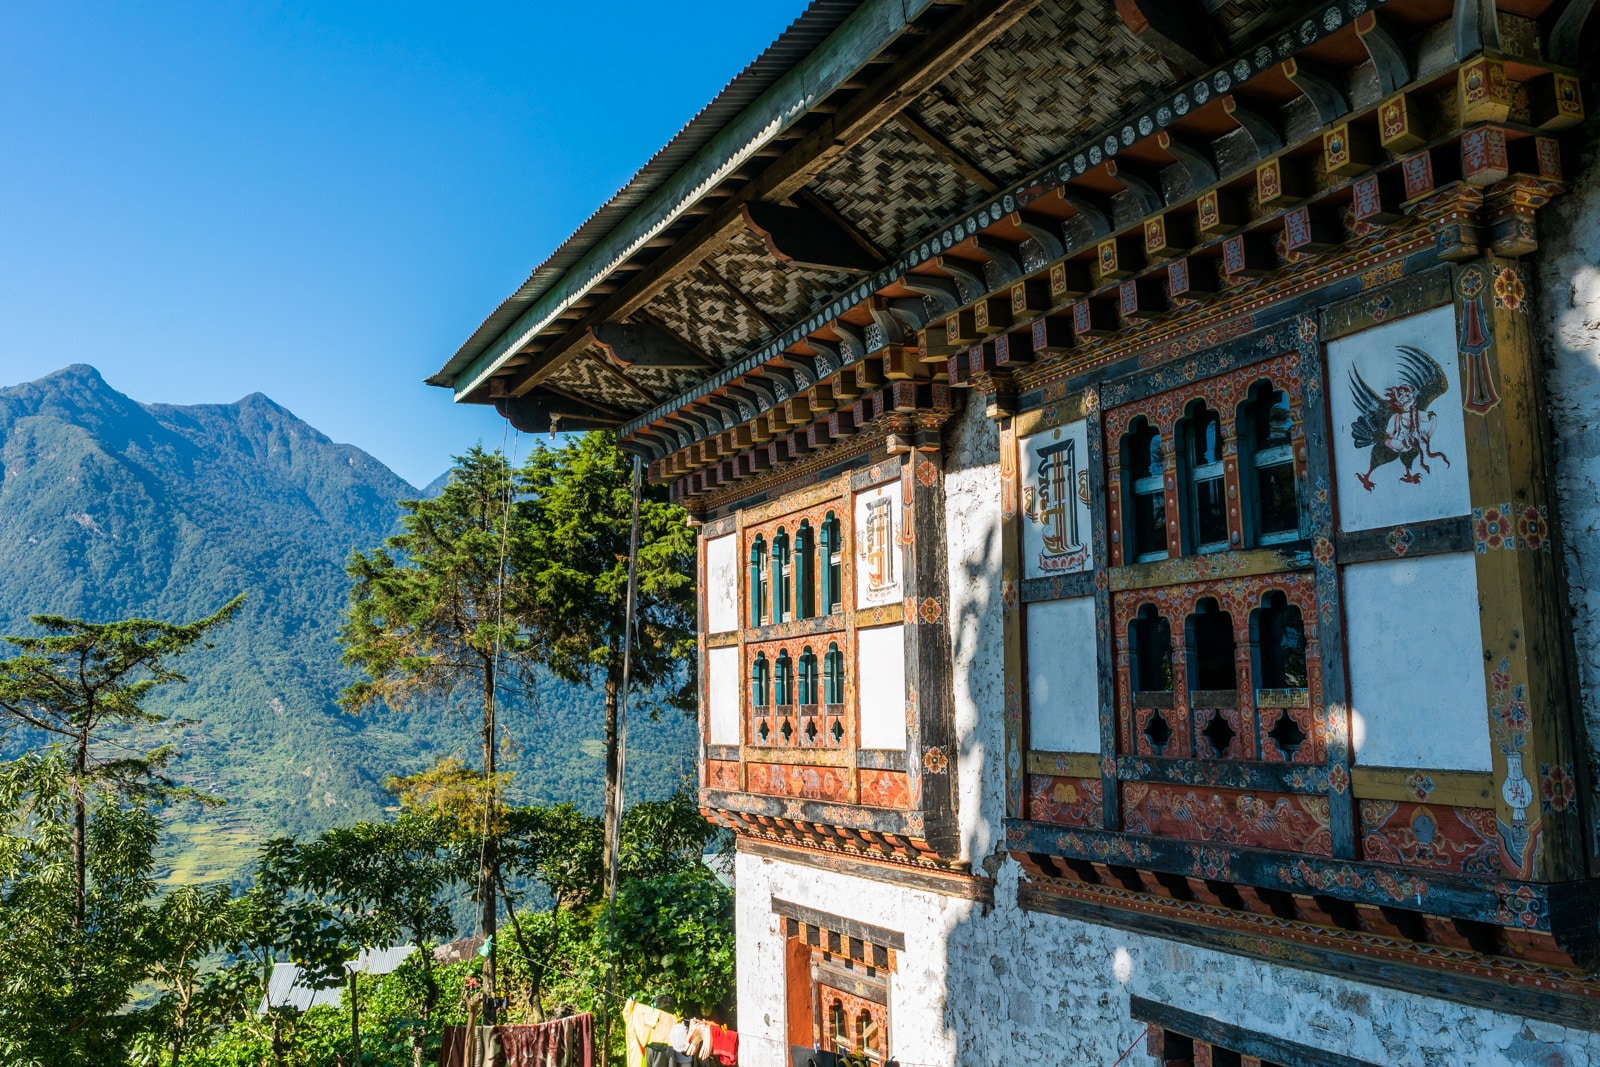 Off the beaten track places in Bhutan - A traditional Bhutanese house in Kuengarabten village - Lost With Purpose travel blog